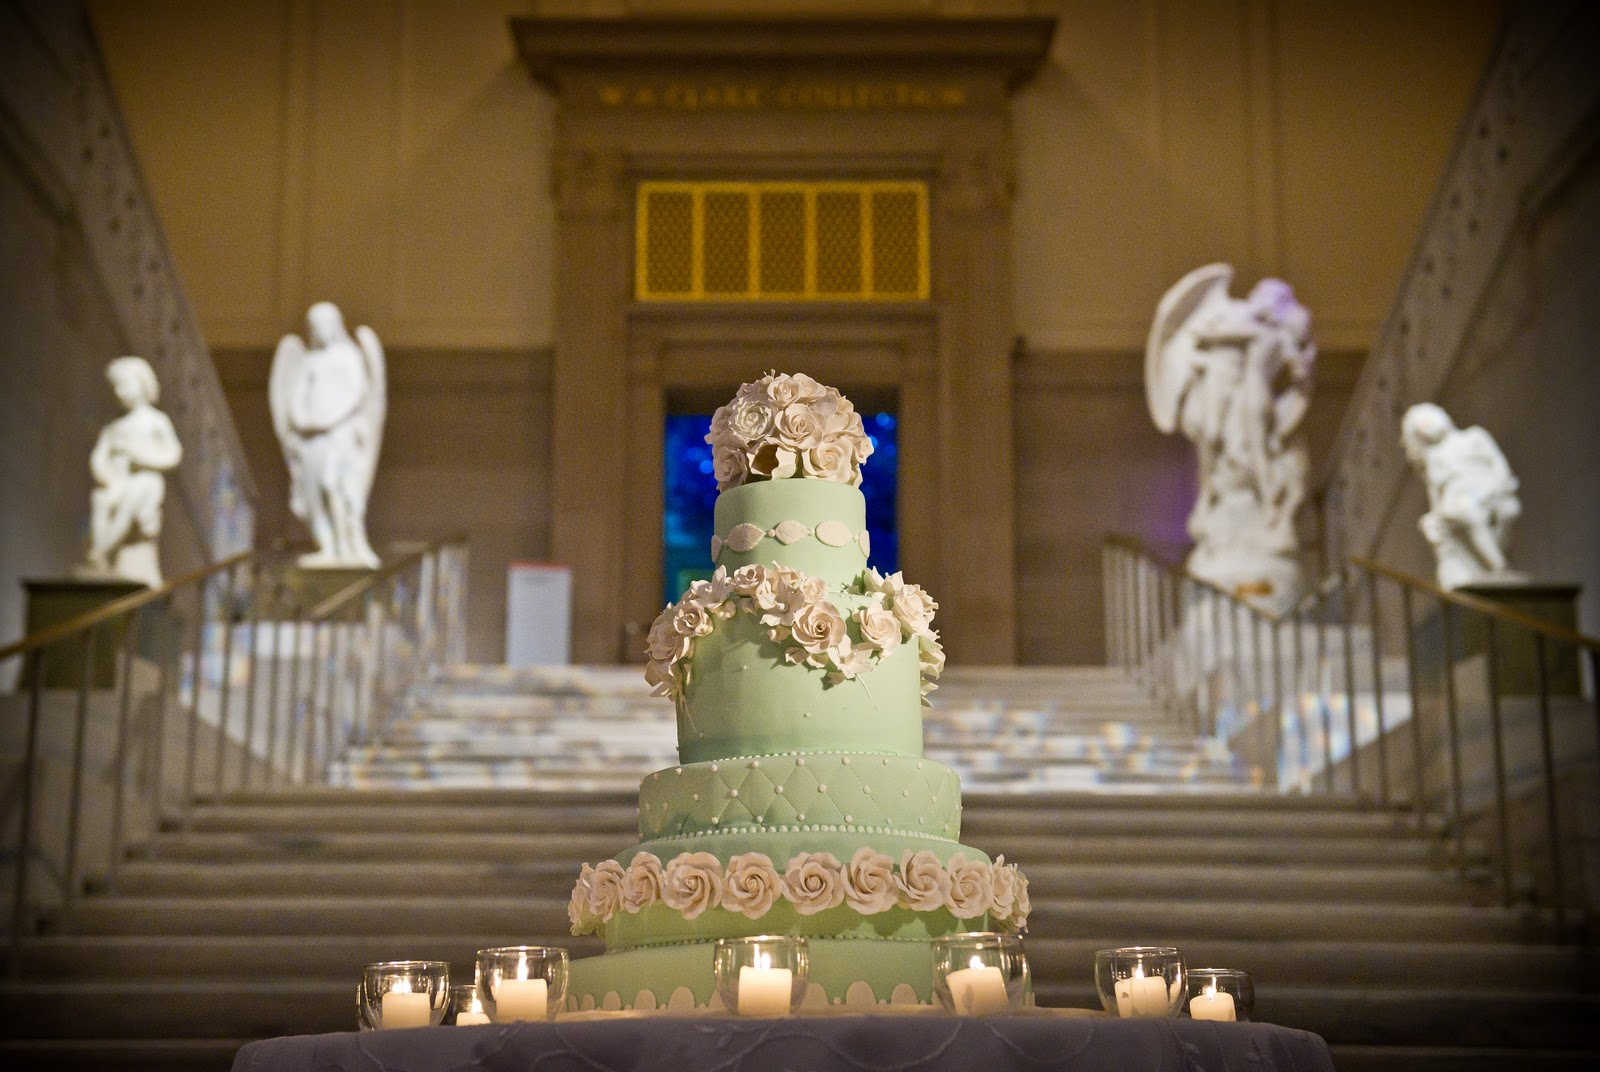 Bridal Bubbly Wedding Cake Flavors The Top Ten